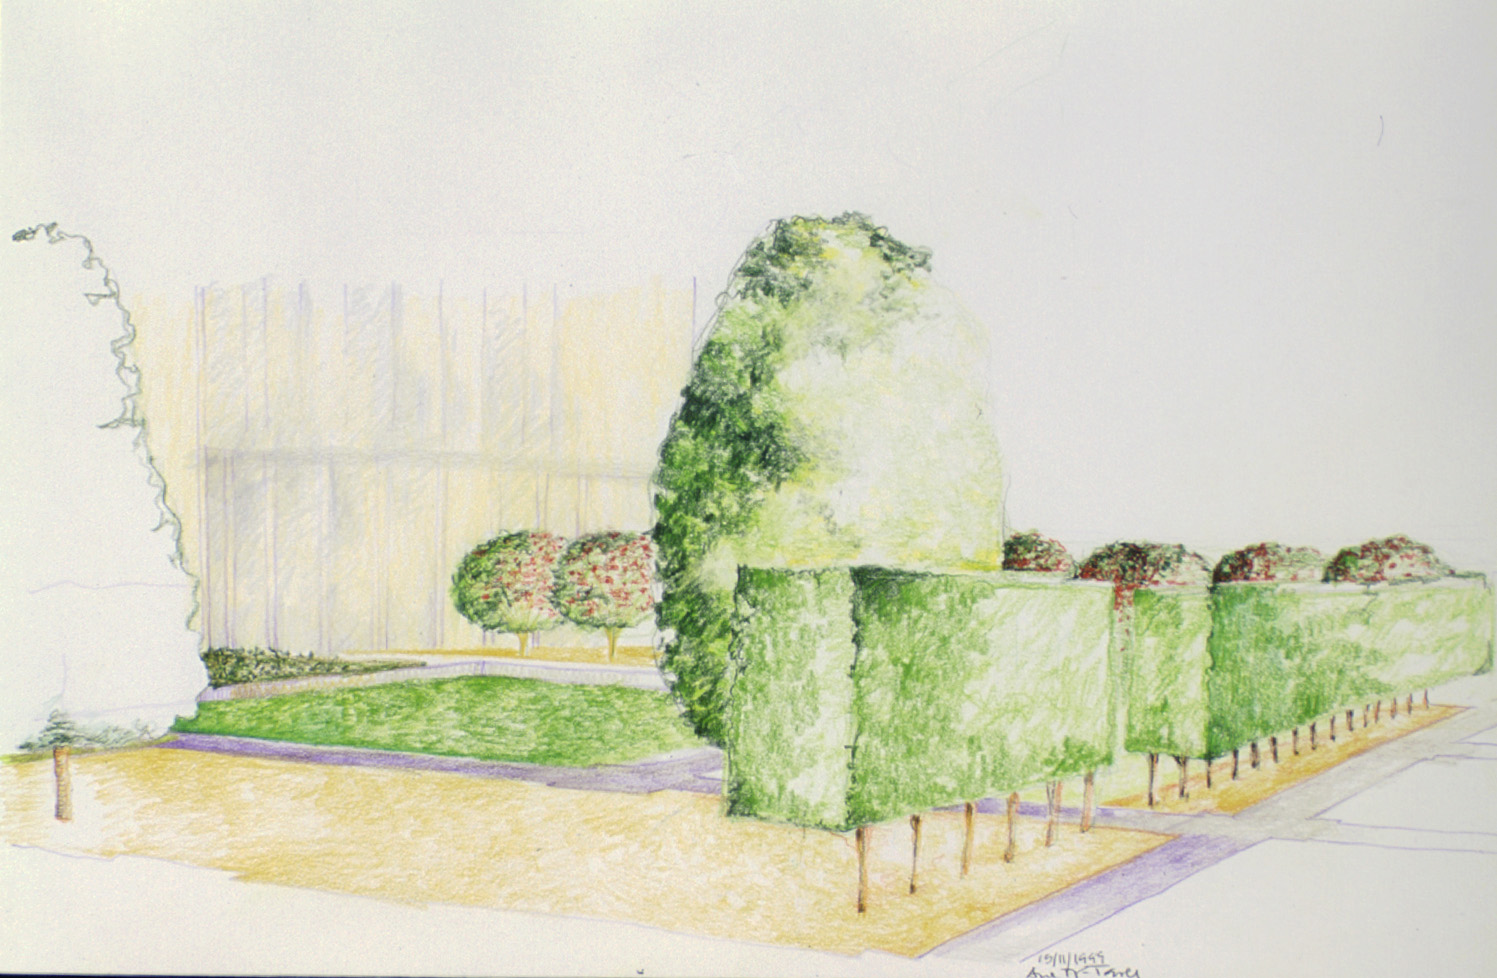 BA_lernercenter_drawing2.jpg